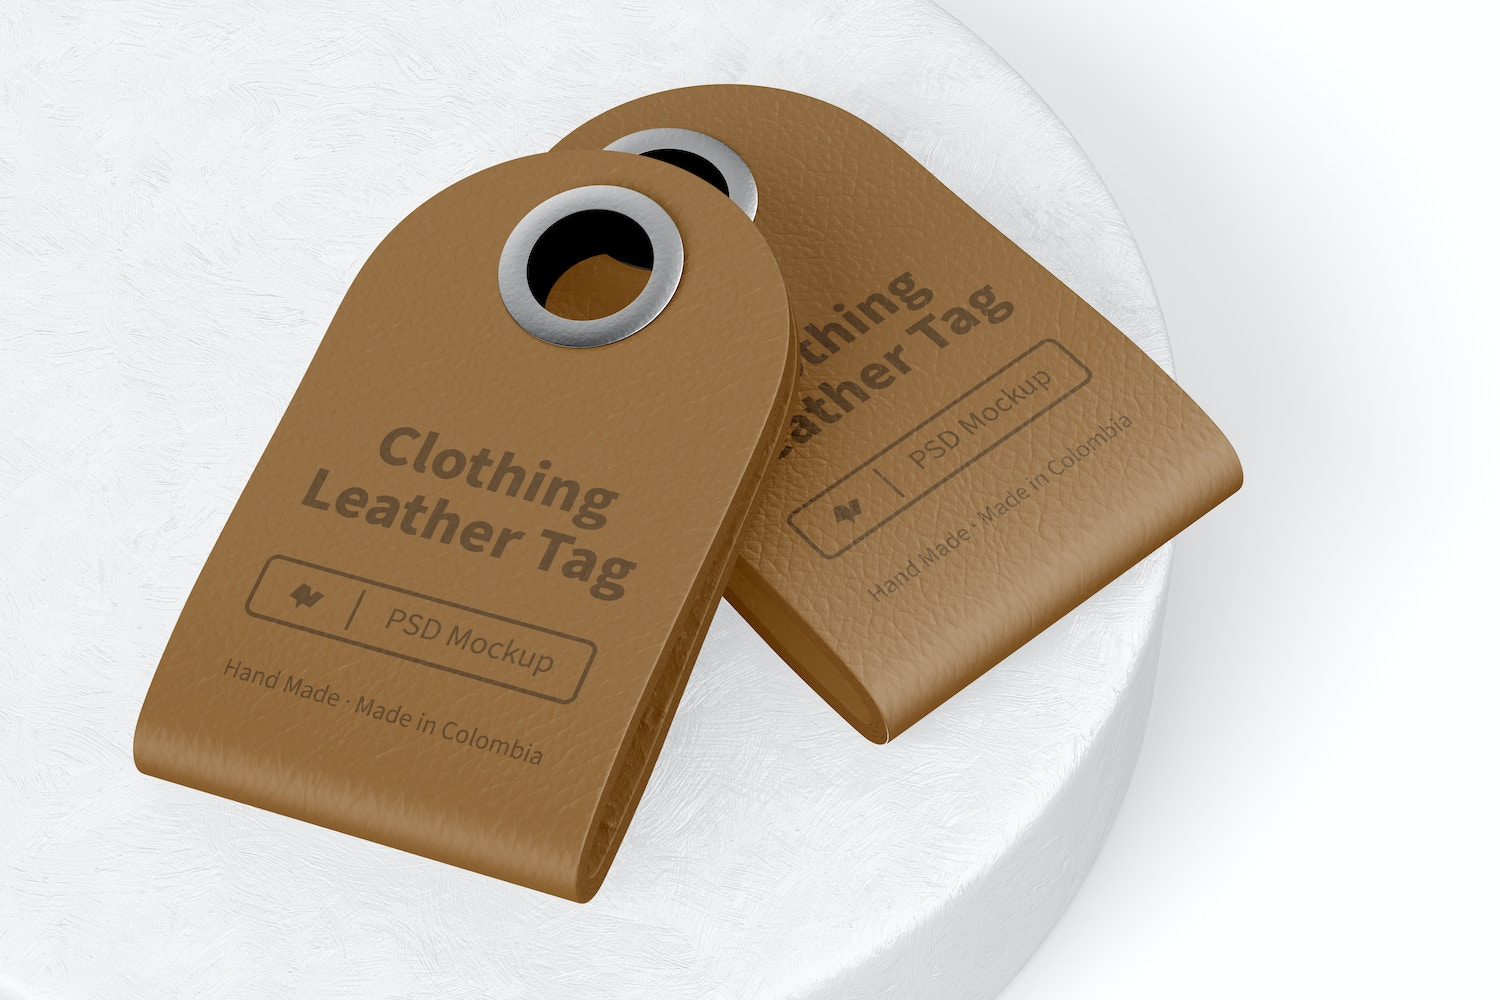 Clothing Leather Tag Mockup, Stacked